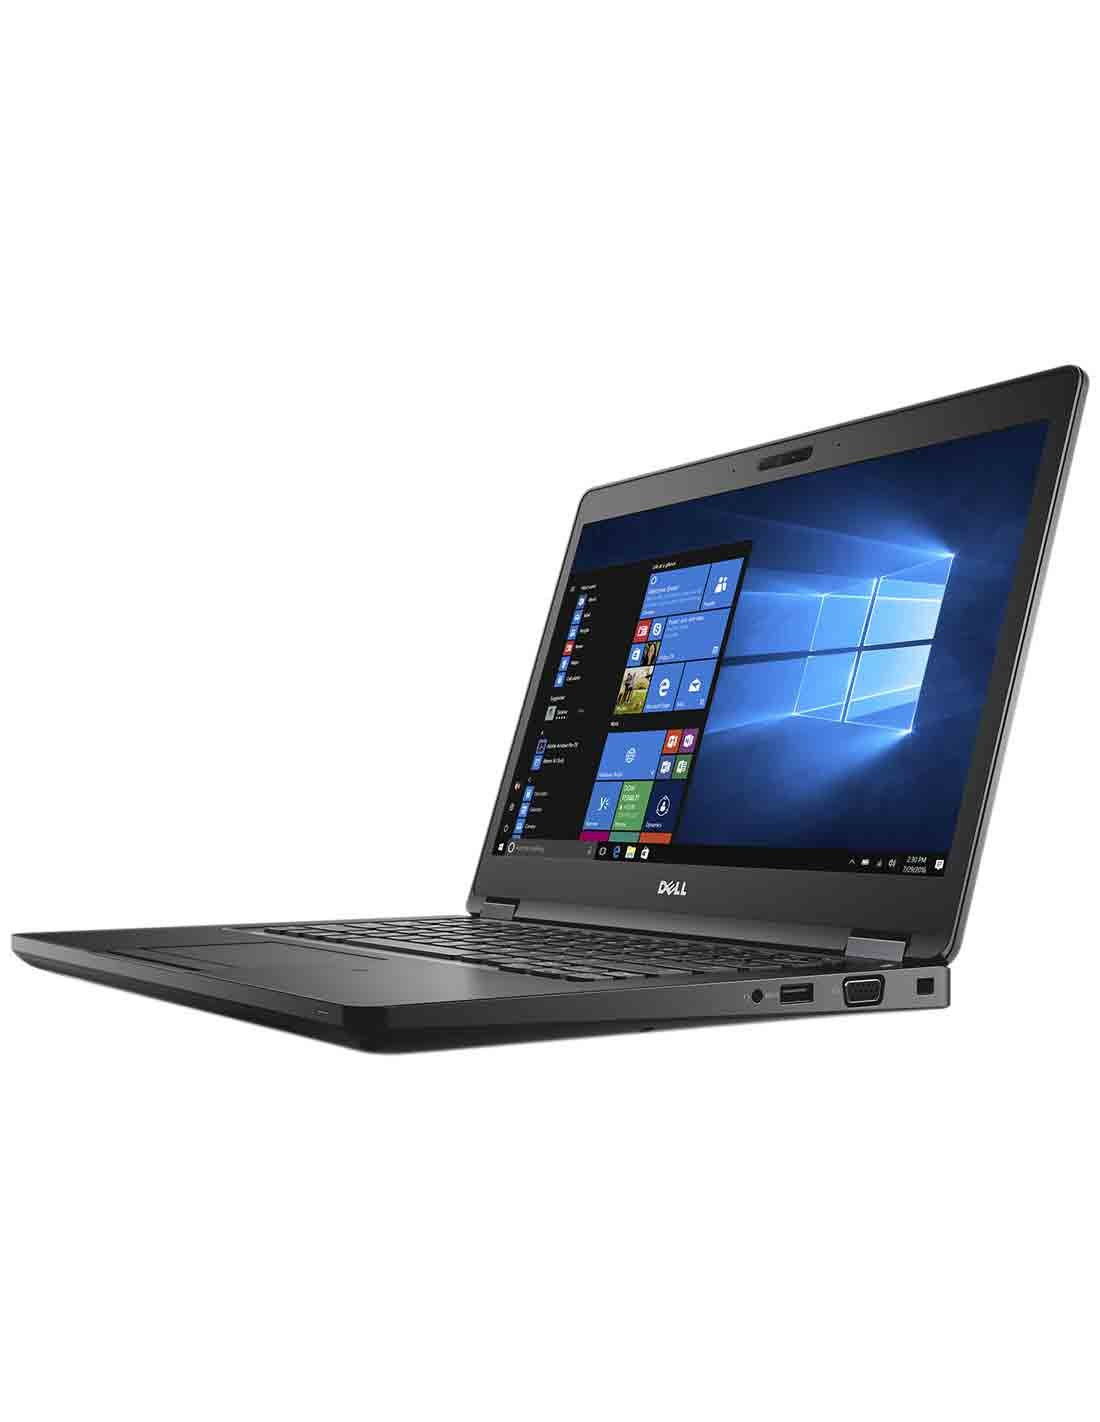 Dell Latitude 5480 Notebook images and photos in Dubai computer store